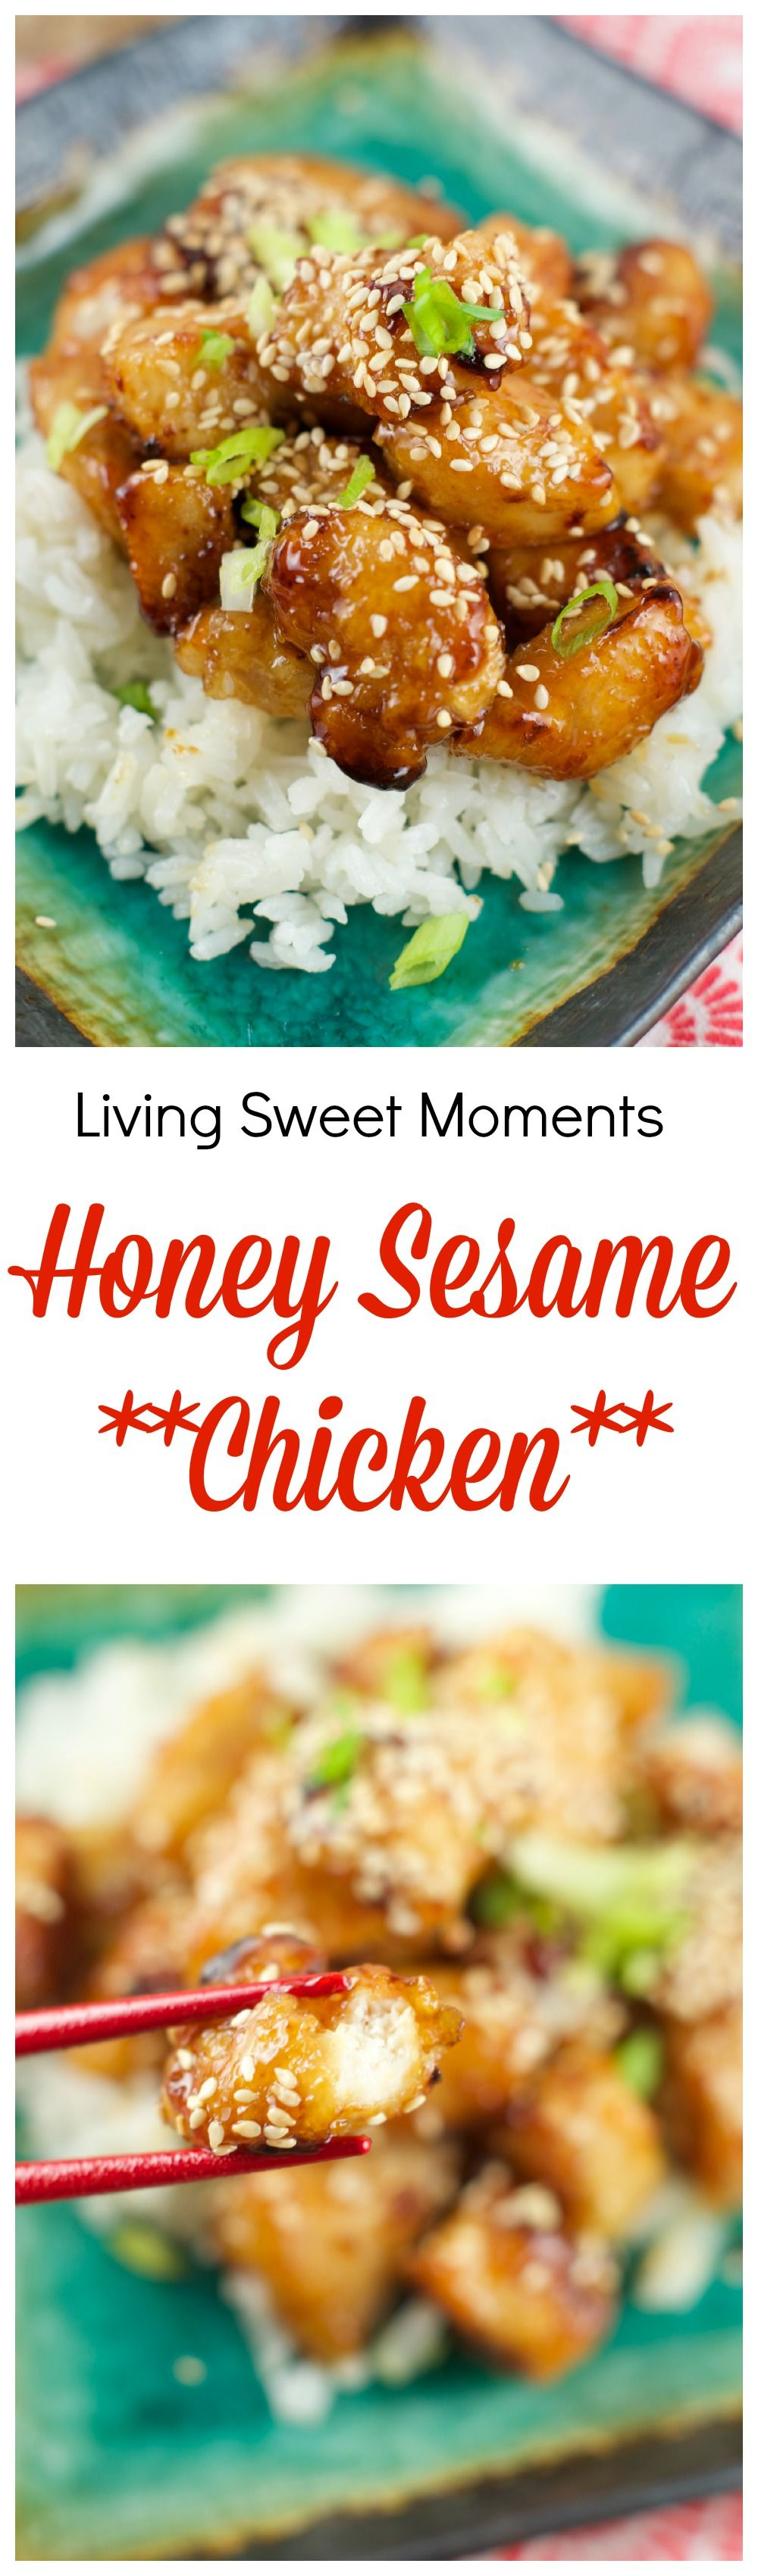 Baked Honey Sesame Chicken Skip the Chinese takeout and